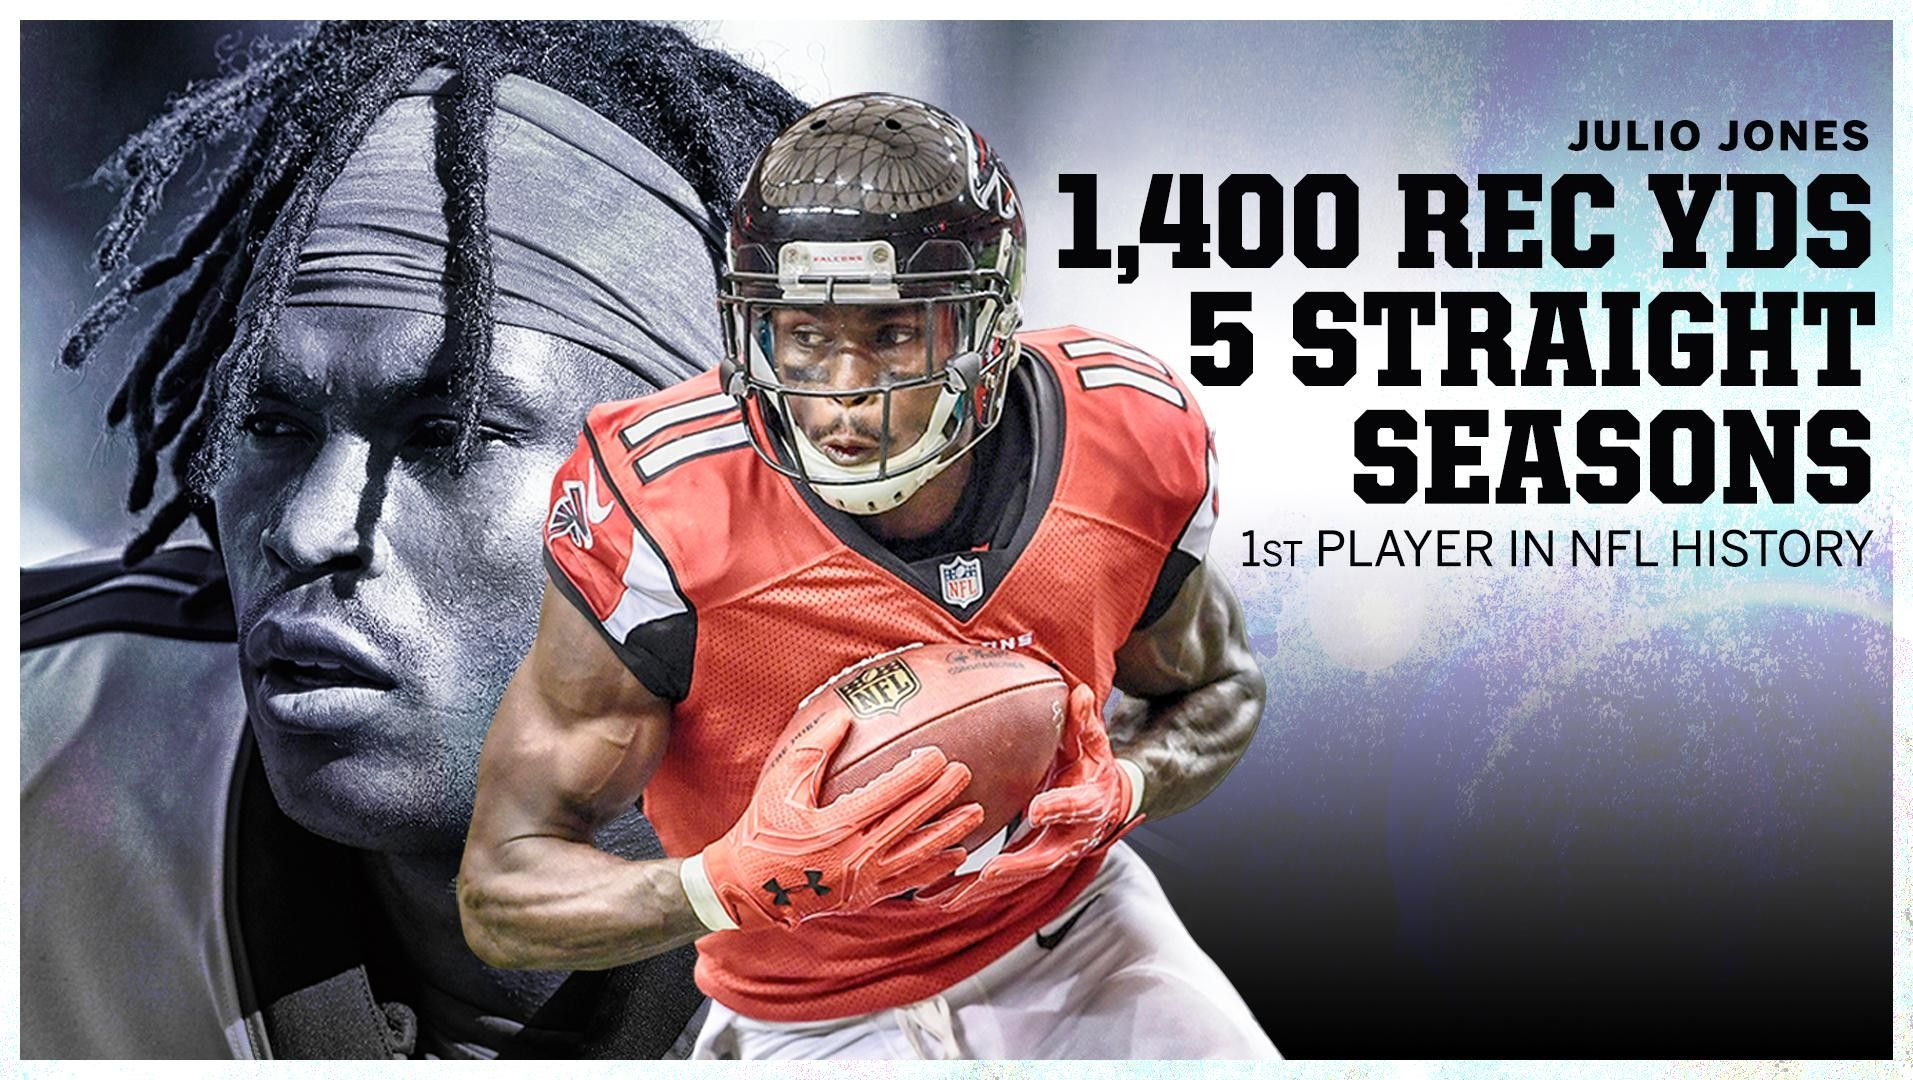 Pin By Amber Almeyda On Wonderful Nfl History Falcons Rise Up Julio Jones